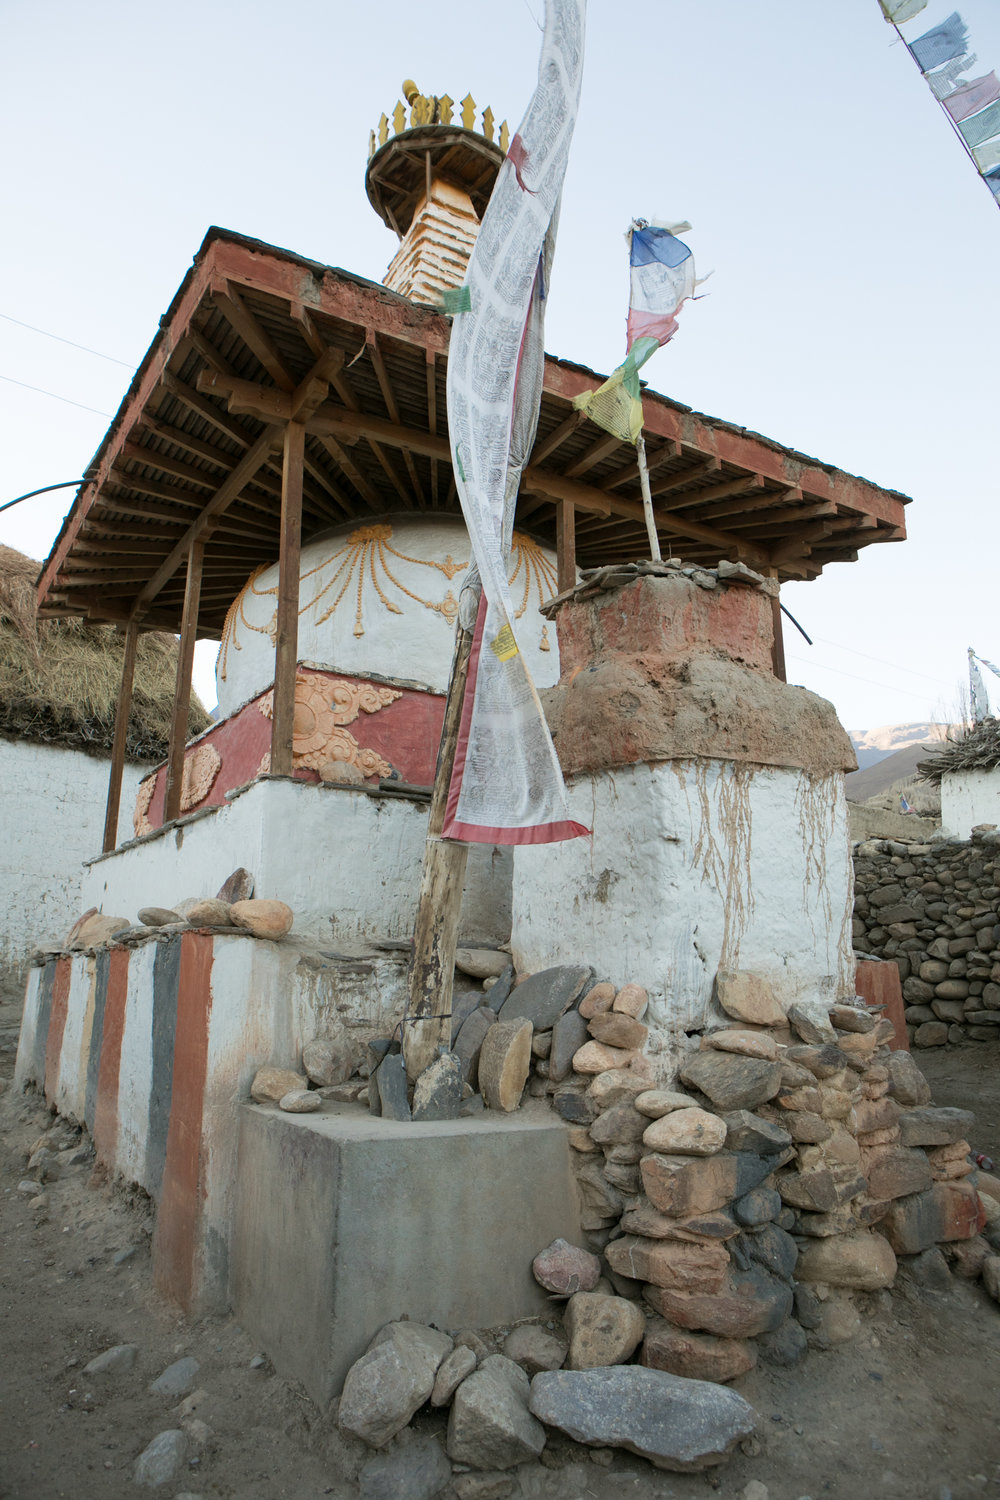 Chorten and mani stones. As we walked through town a tea house owner invited us to see his prayer room and to join him for tea. I don't have any photos but the space was beautiful.  As we drank tea his cat trotted into the house and brought us a gift of a dead mouse. We stayed and talked of the road and the controversy around it.  Many people don't want the road because they fear it will change this remote region while others want the road to bring in goods and provide access to supplies. He said that he feels his community would remain the same and not lose their traditions with the new trade route.  He welcomed the access to resources.